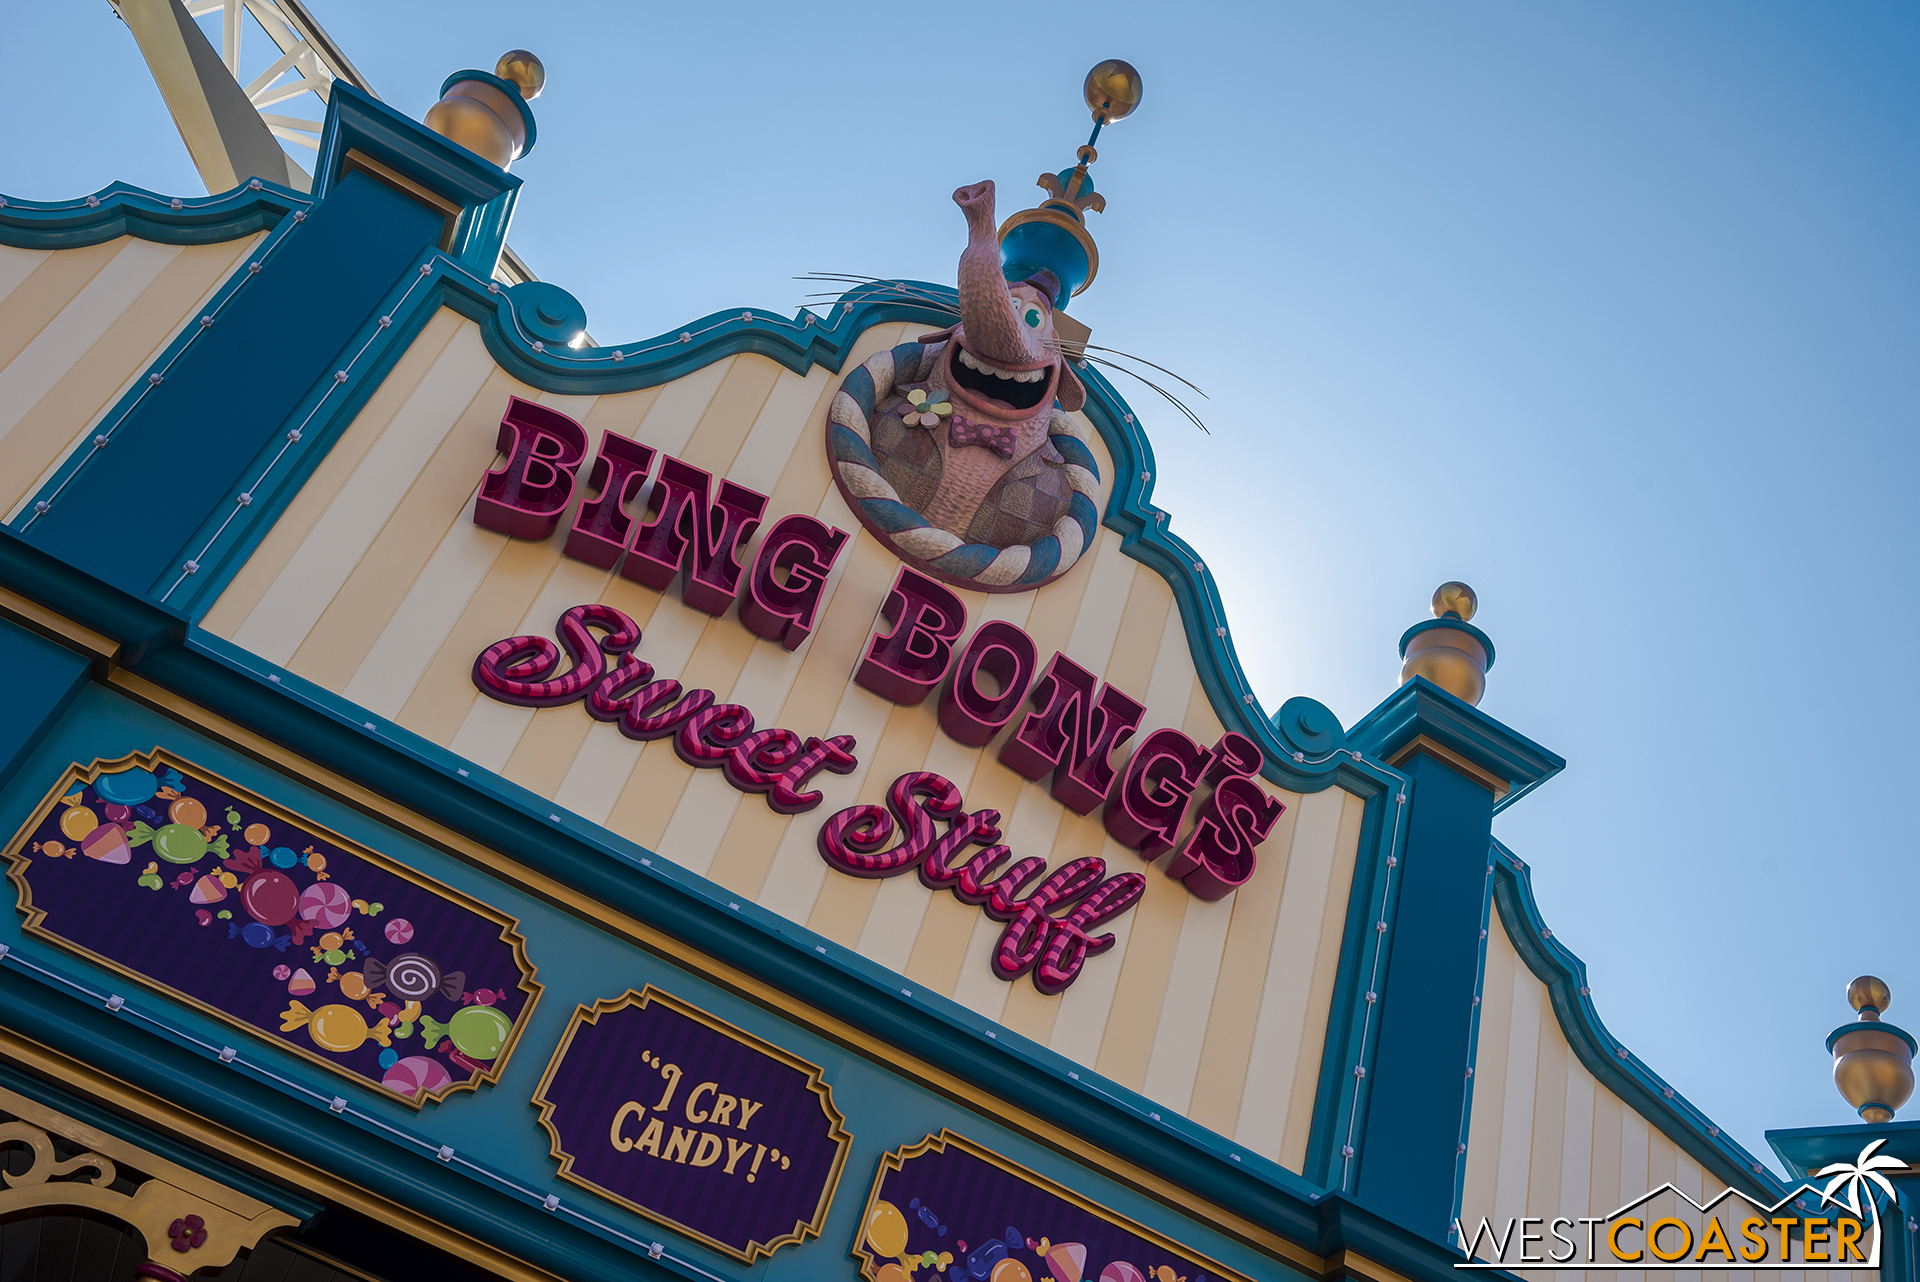 I do like its exterior aesthetic, which reinforces that classic seaside amusement park pier look better.